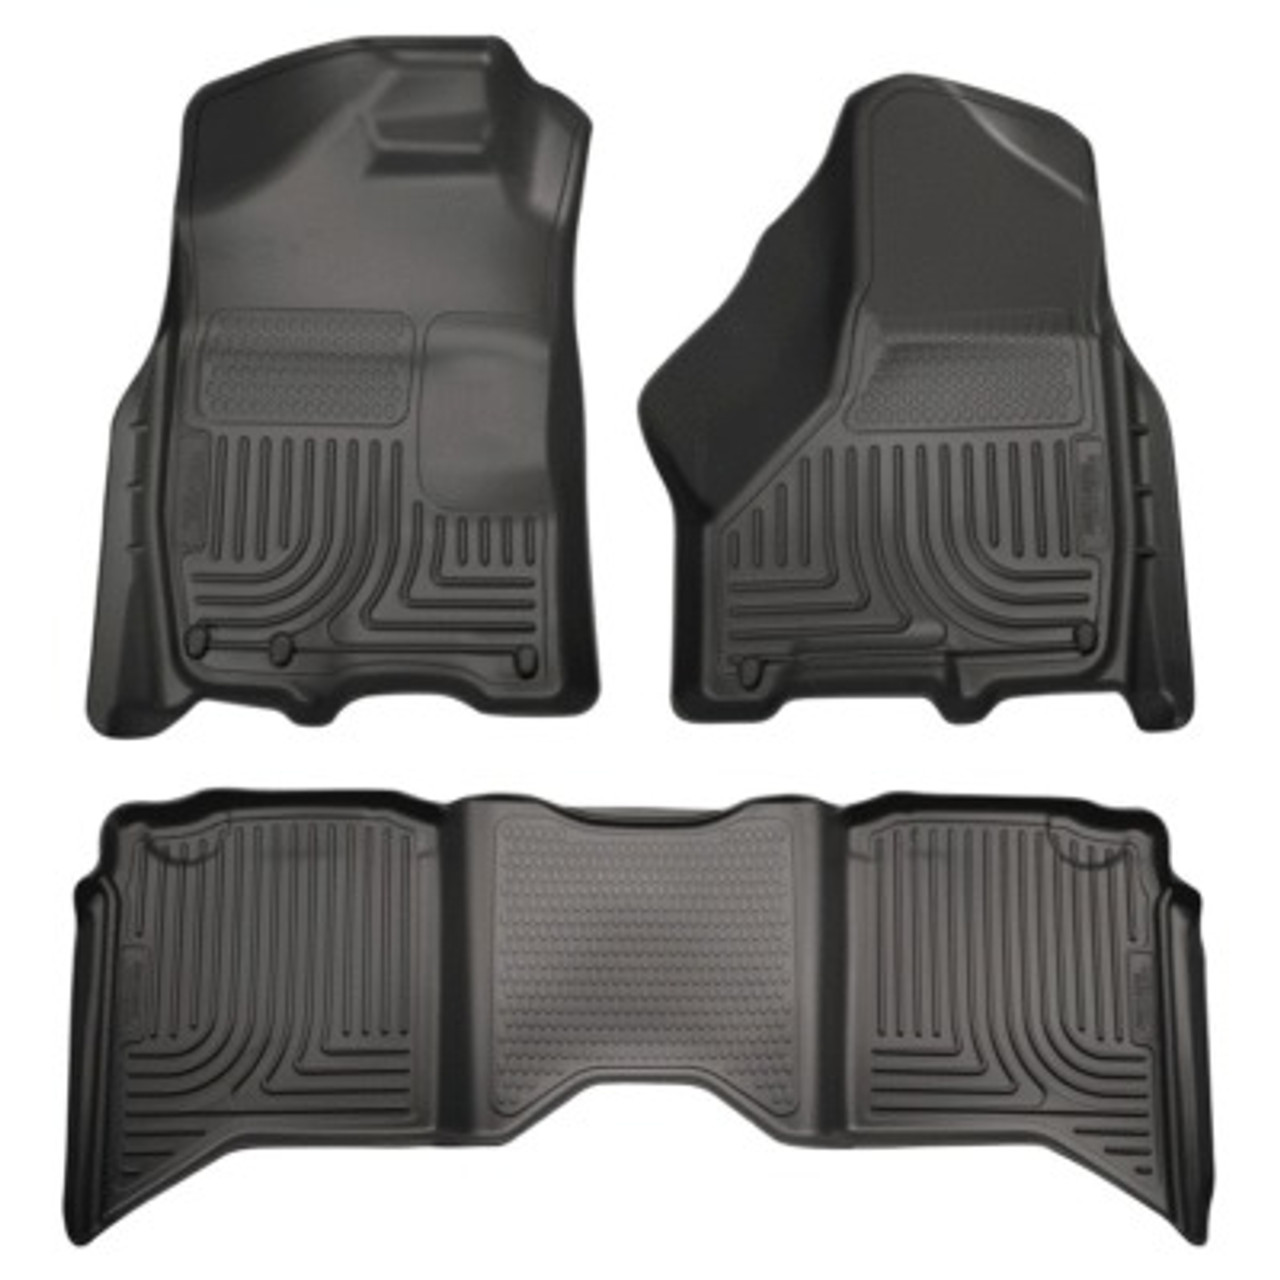 HSK99001, Floor Liner, Weatherbeater, Front and 2nd Row, Plastic, Black, Crew Cab, Dodge Fullsize Truck 2009-14, Kit